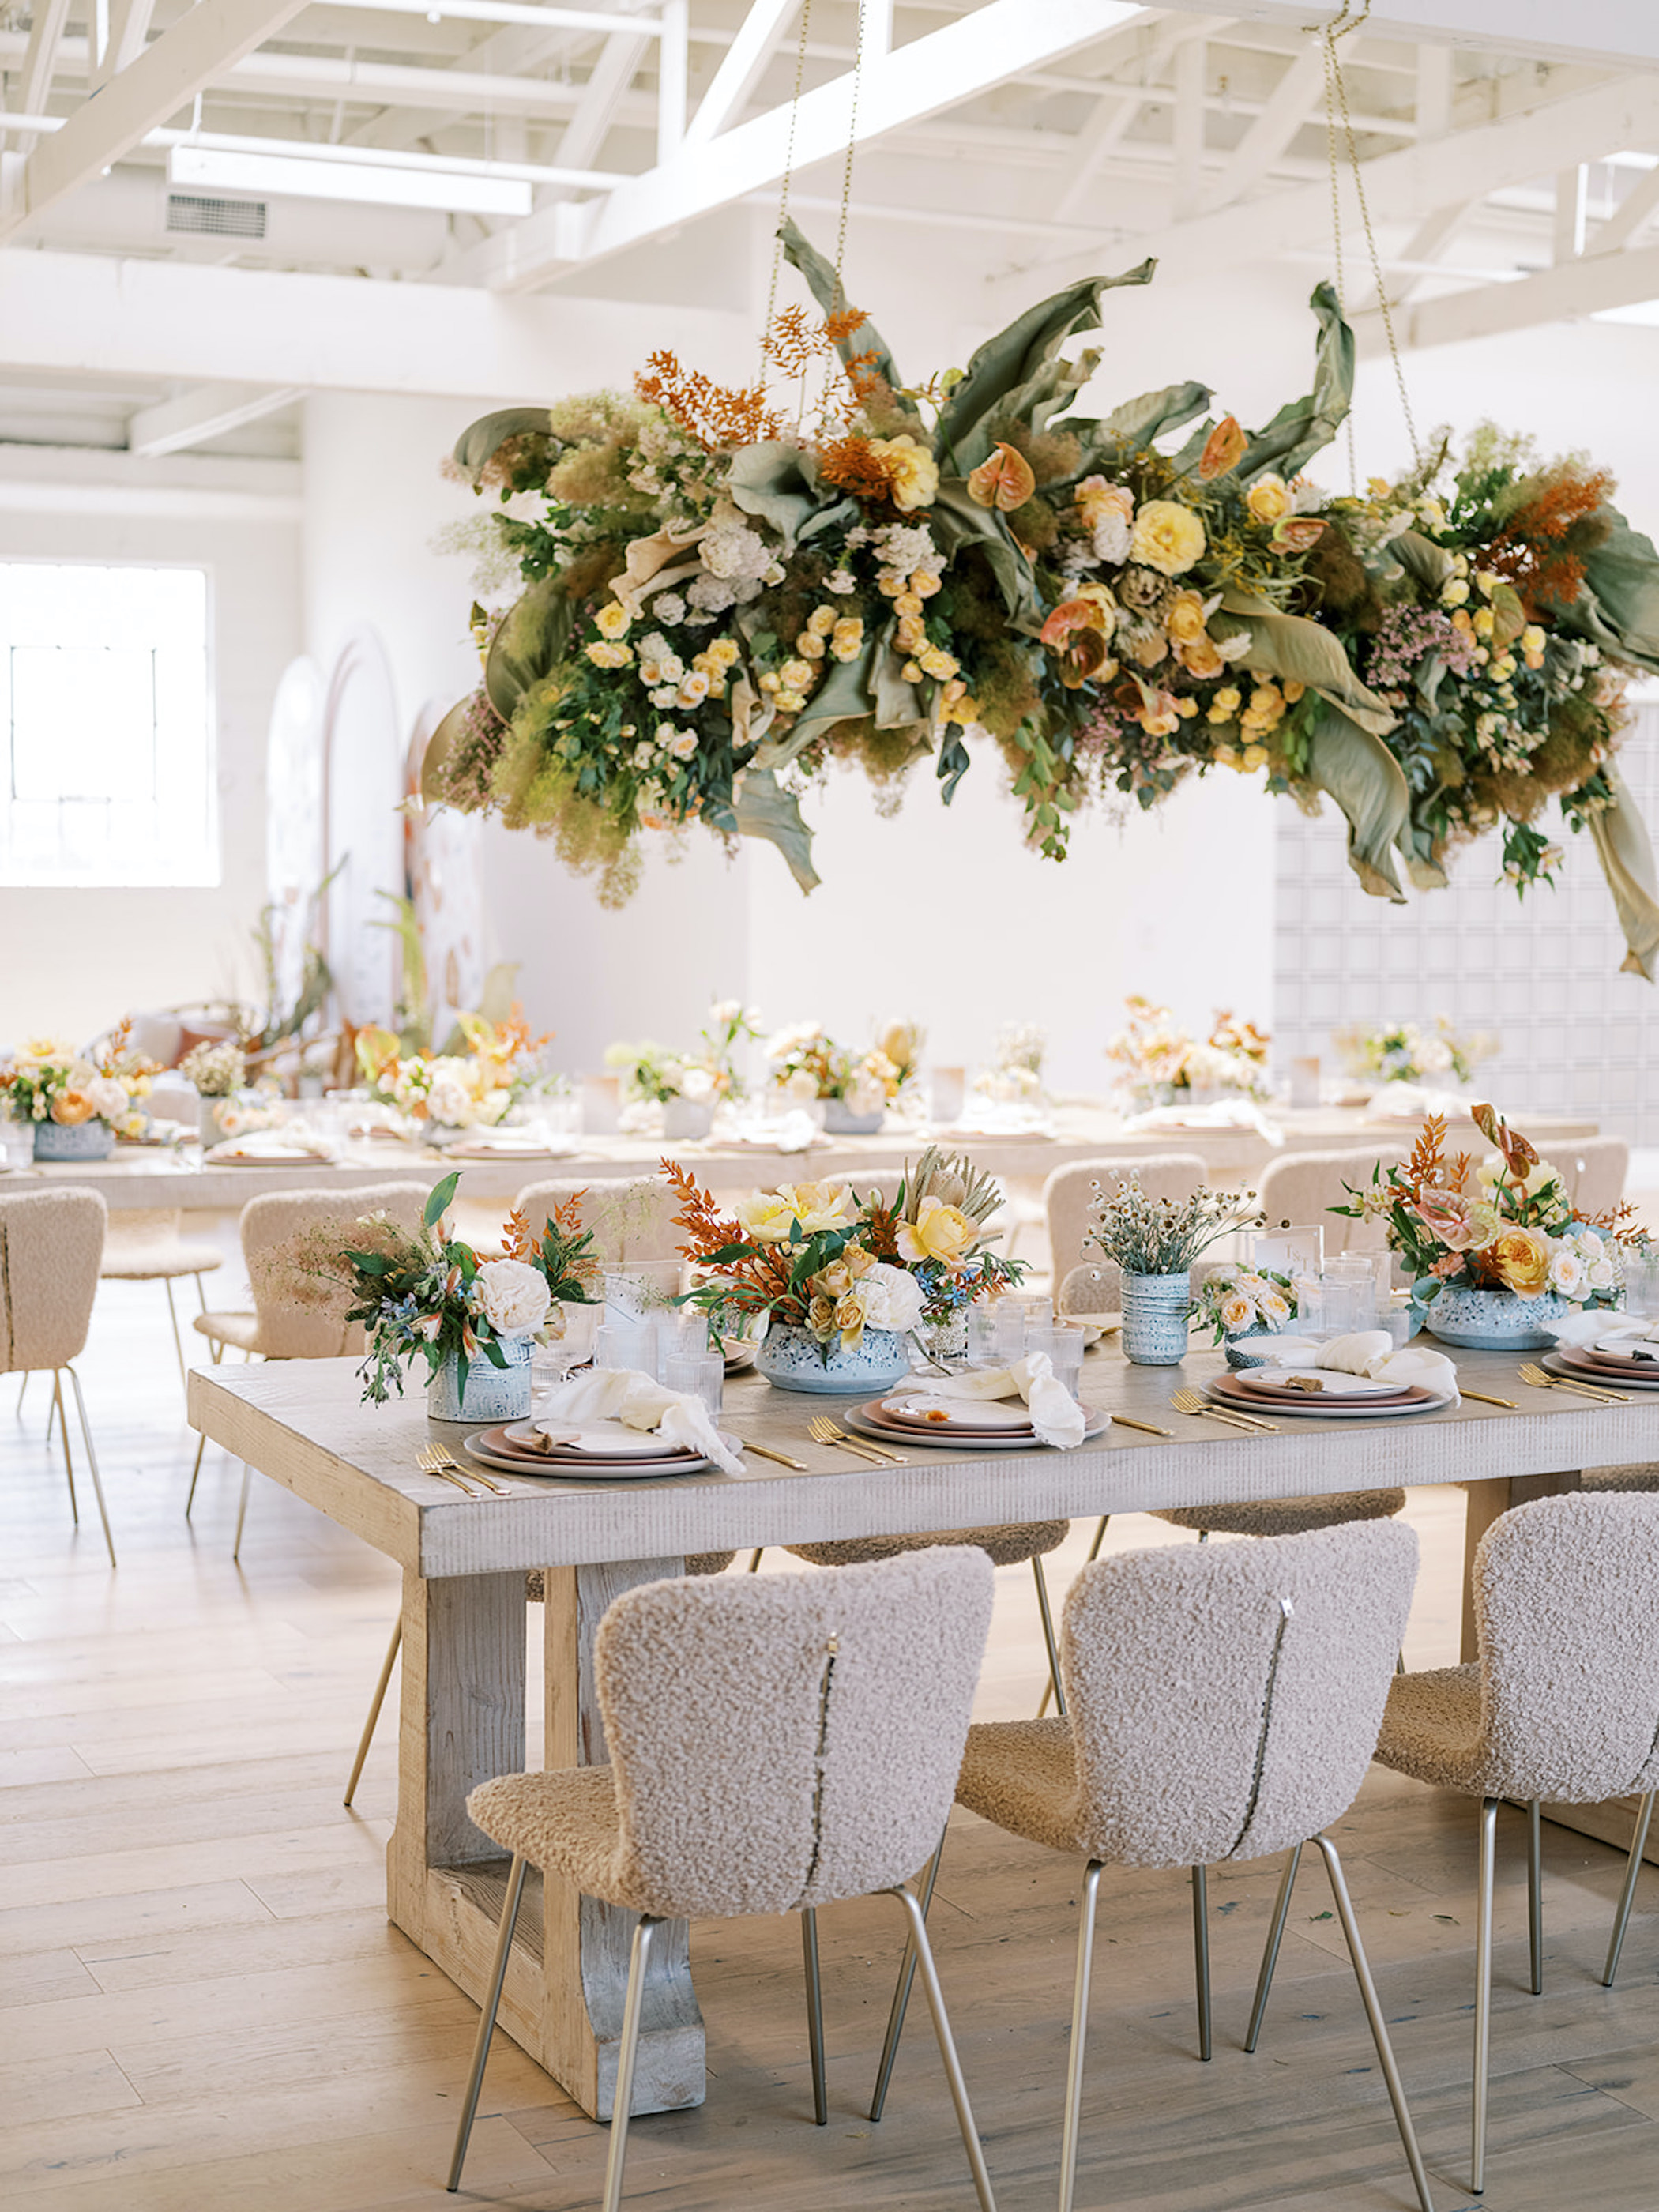 terrazzo party ideas with hanging florals